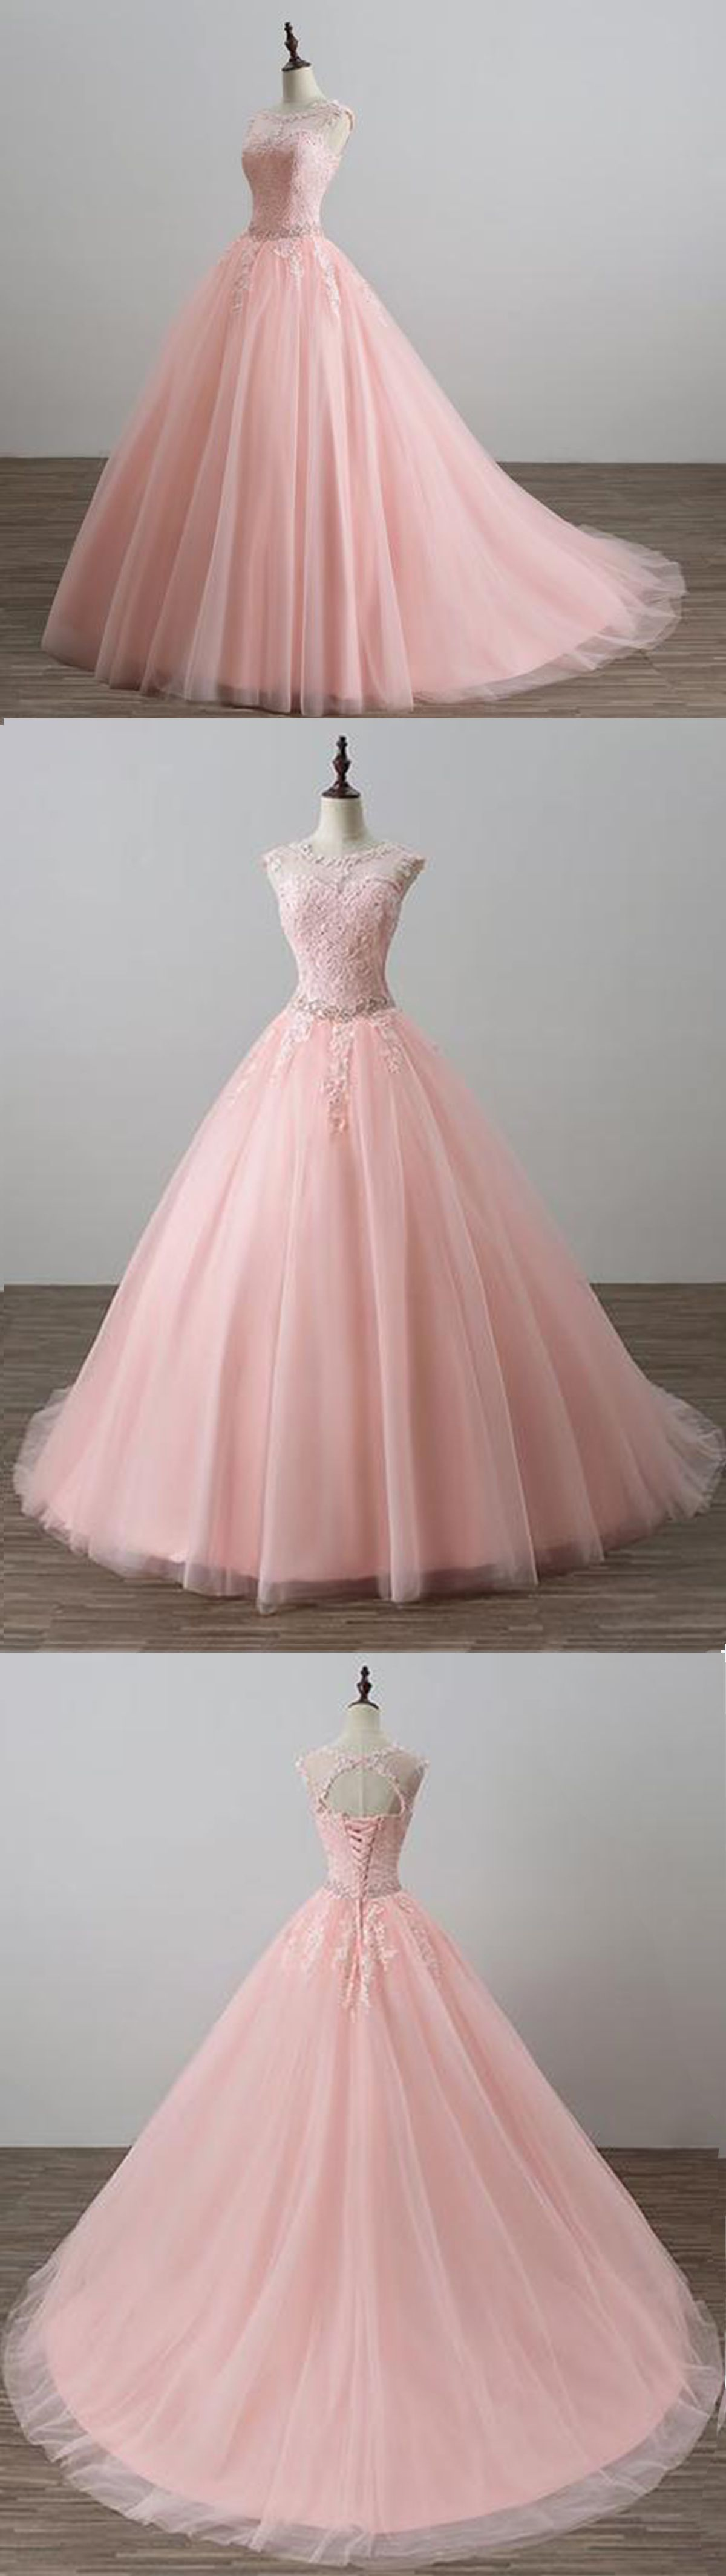 Sweet dresses cute pink tulle modest prom dress for teens prom